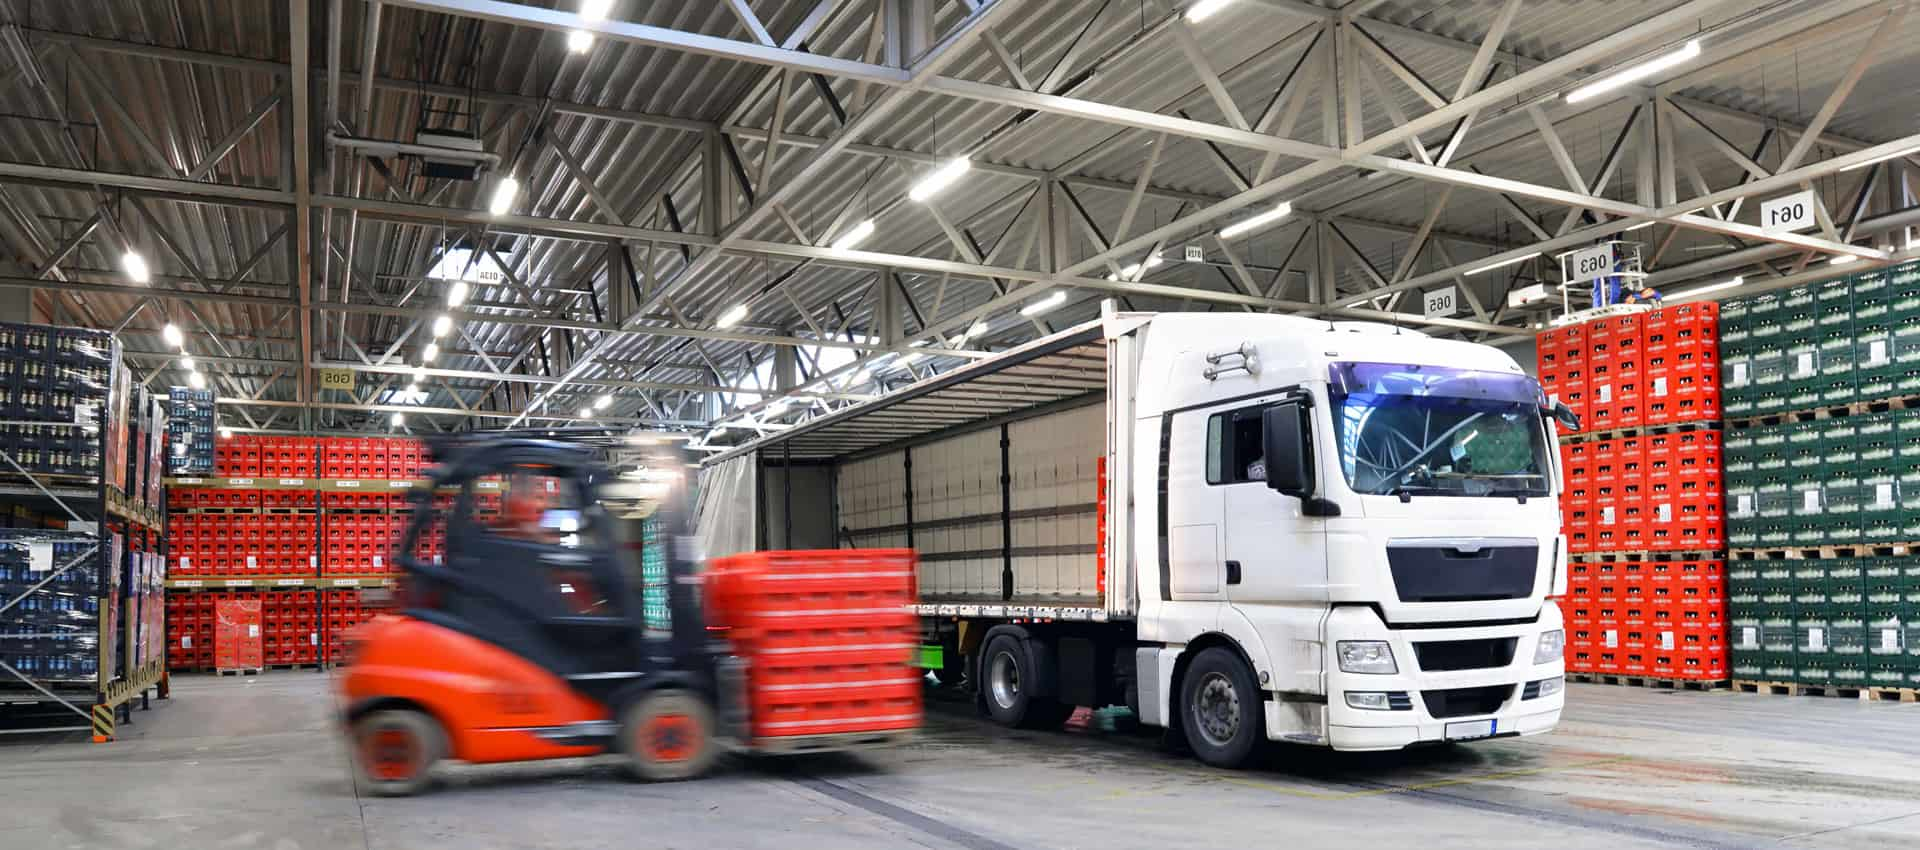 Loading and unloading in a warehouse